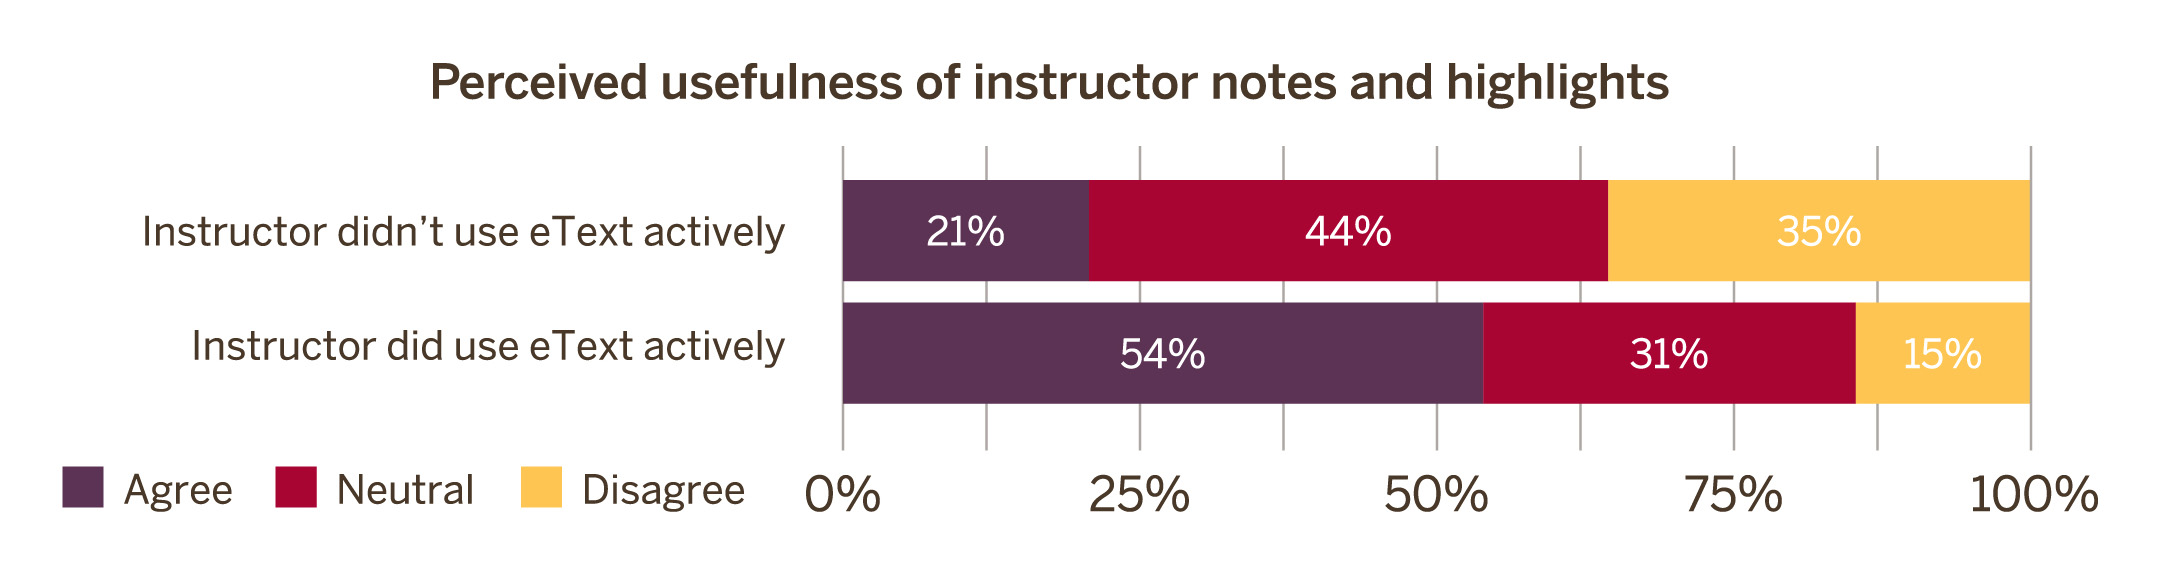 Perceived usefulness of instructor notes and highlights